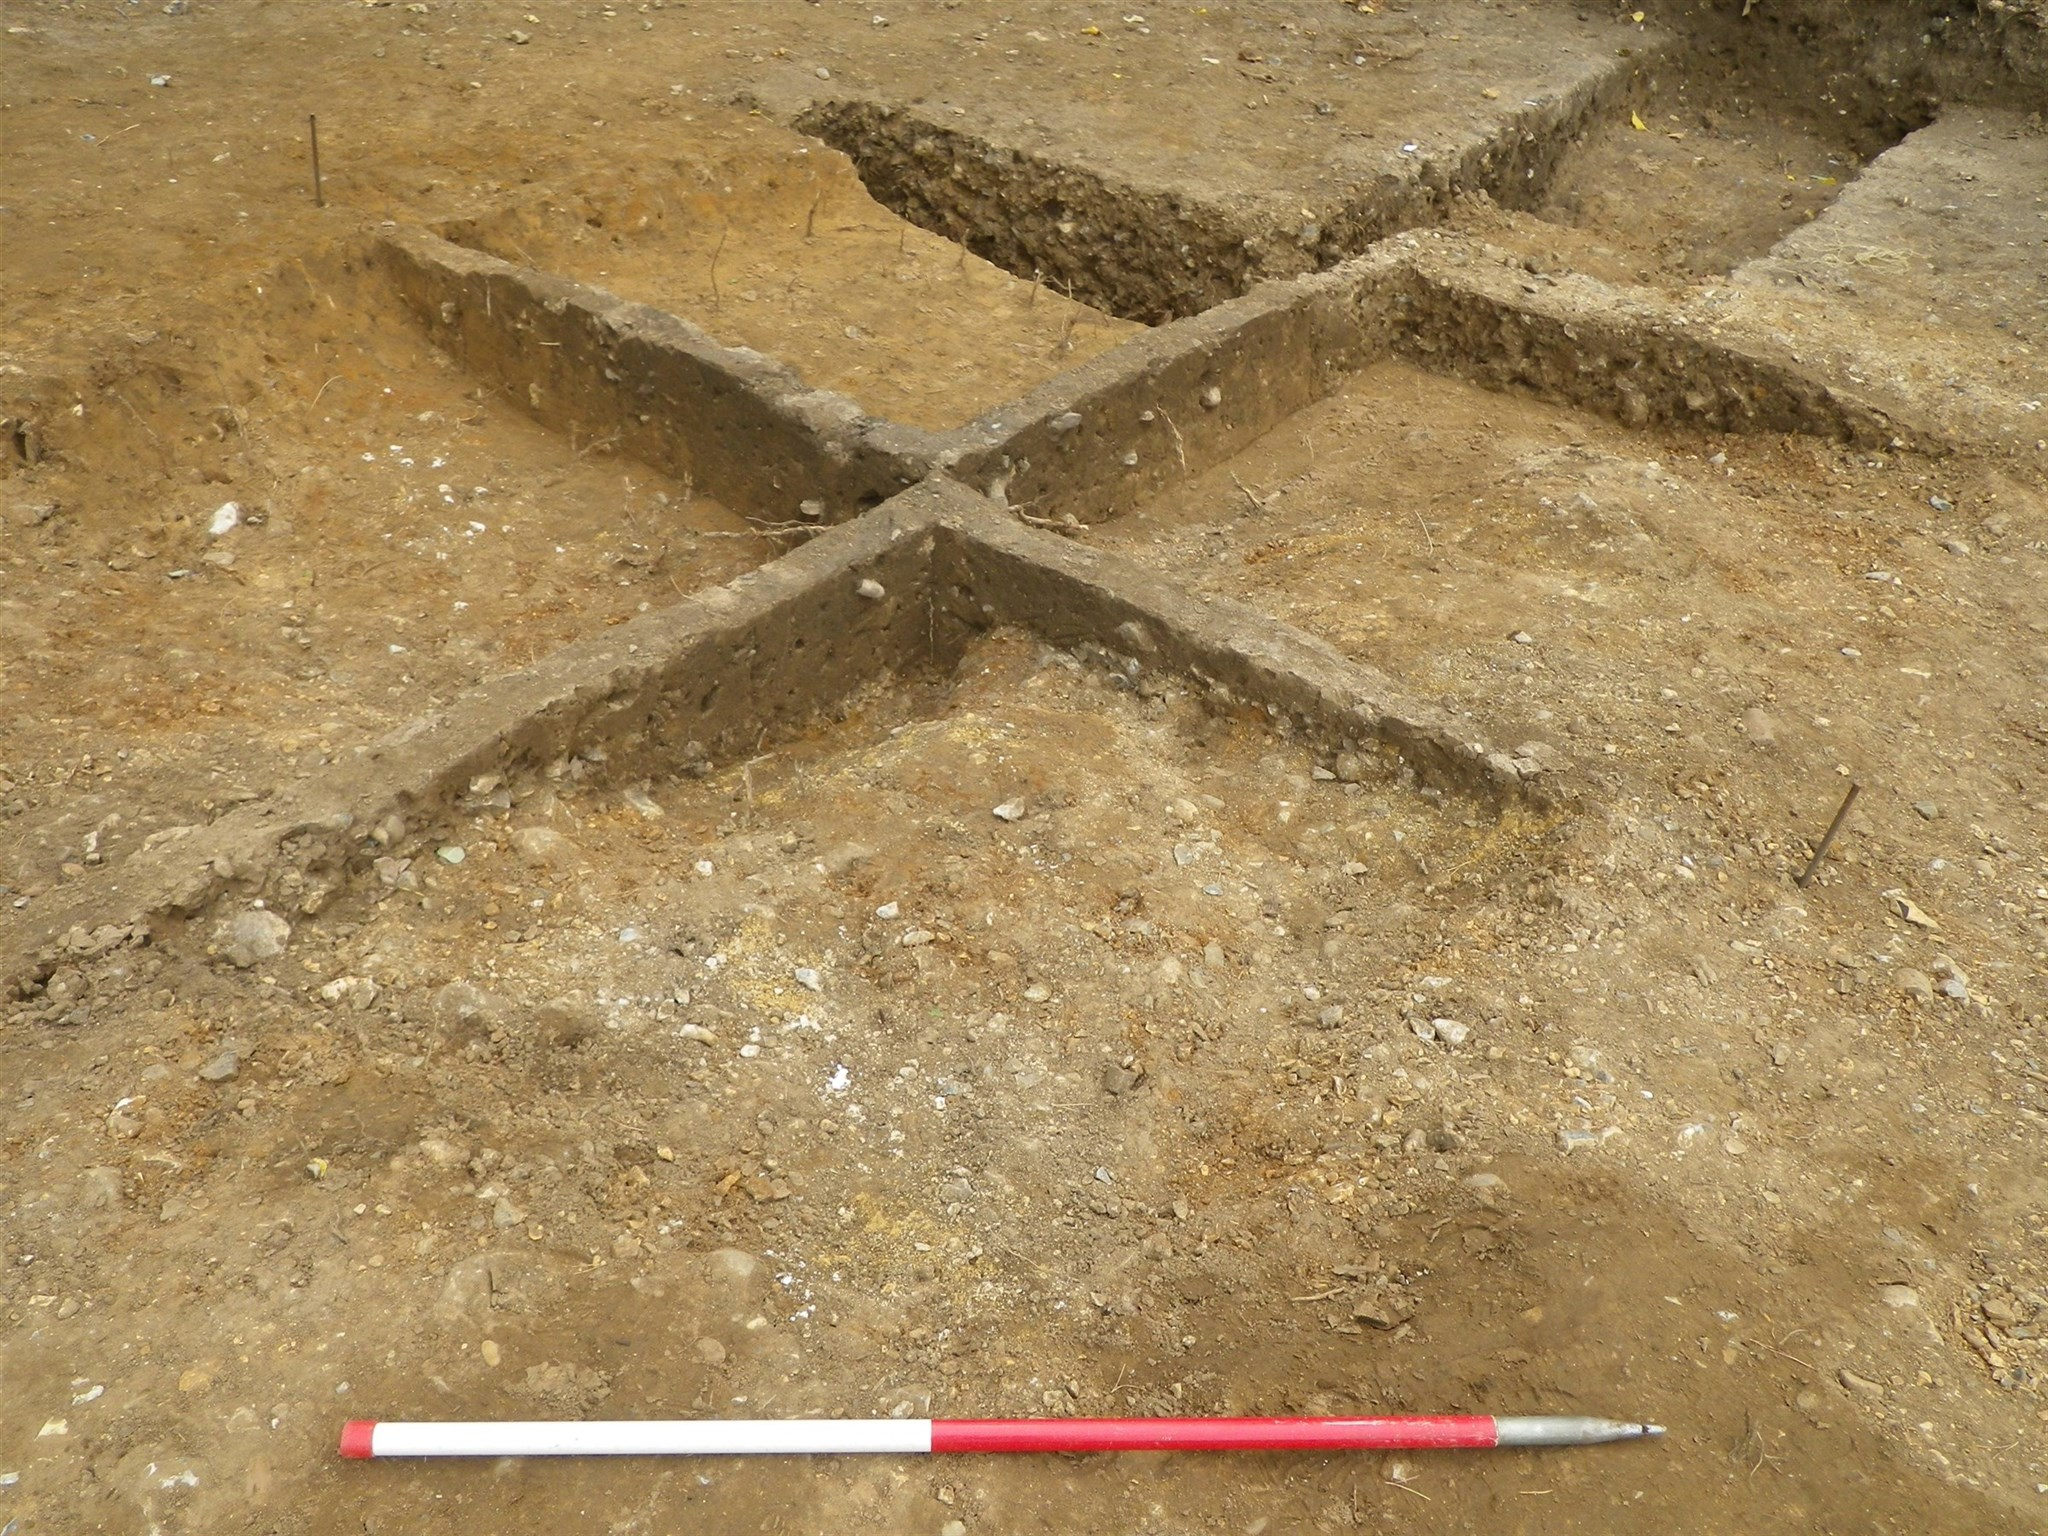 A fully excavated SFB at Kentford